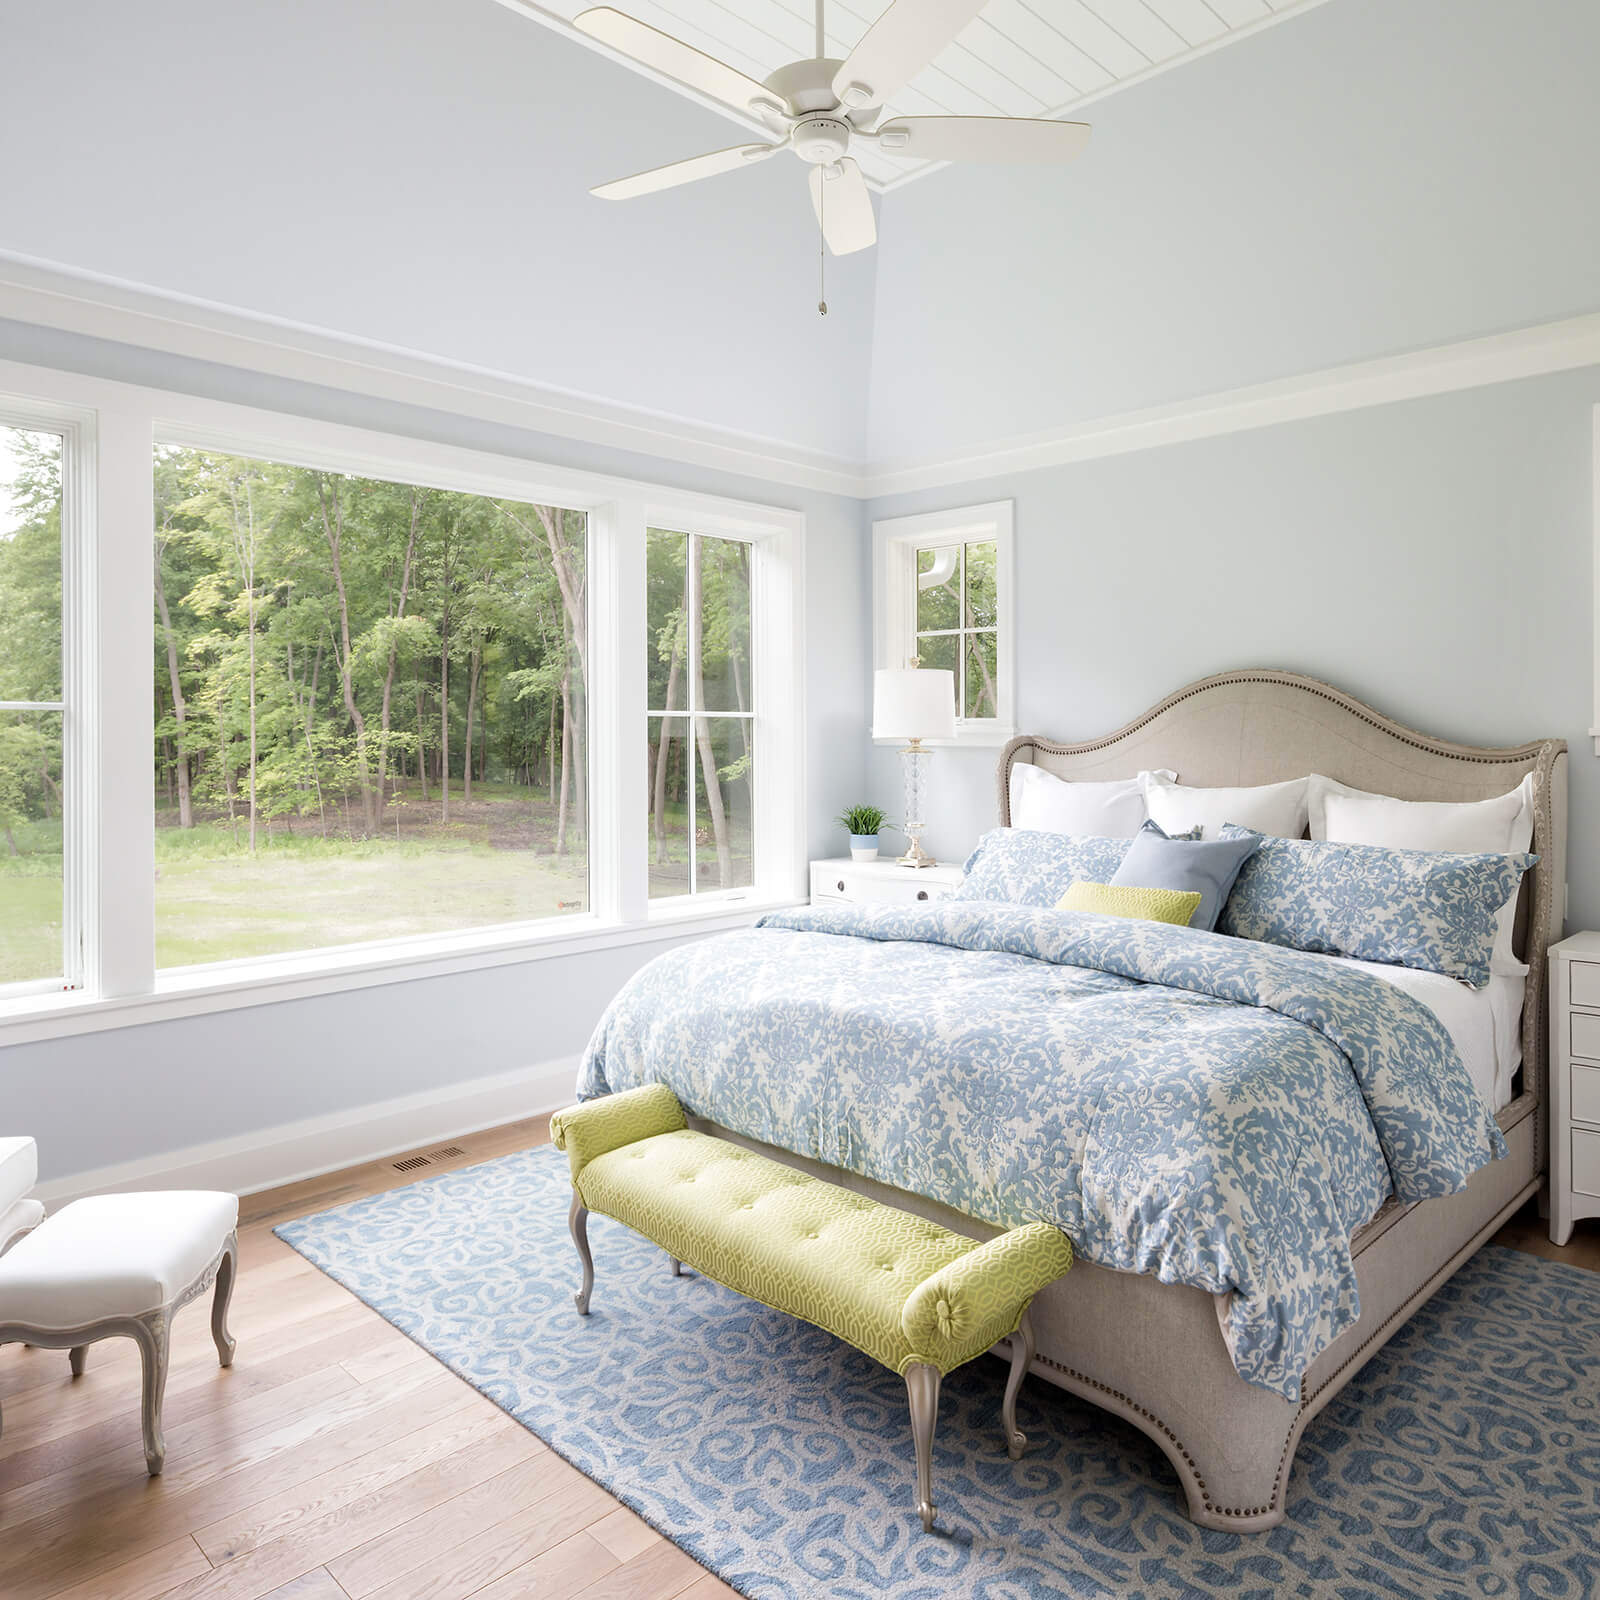 Bedroom with high ceilings with Marvin Elevate Casement and Direct Glaze Windows